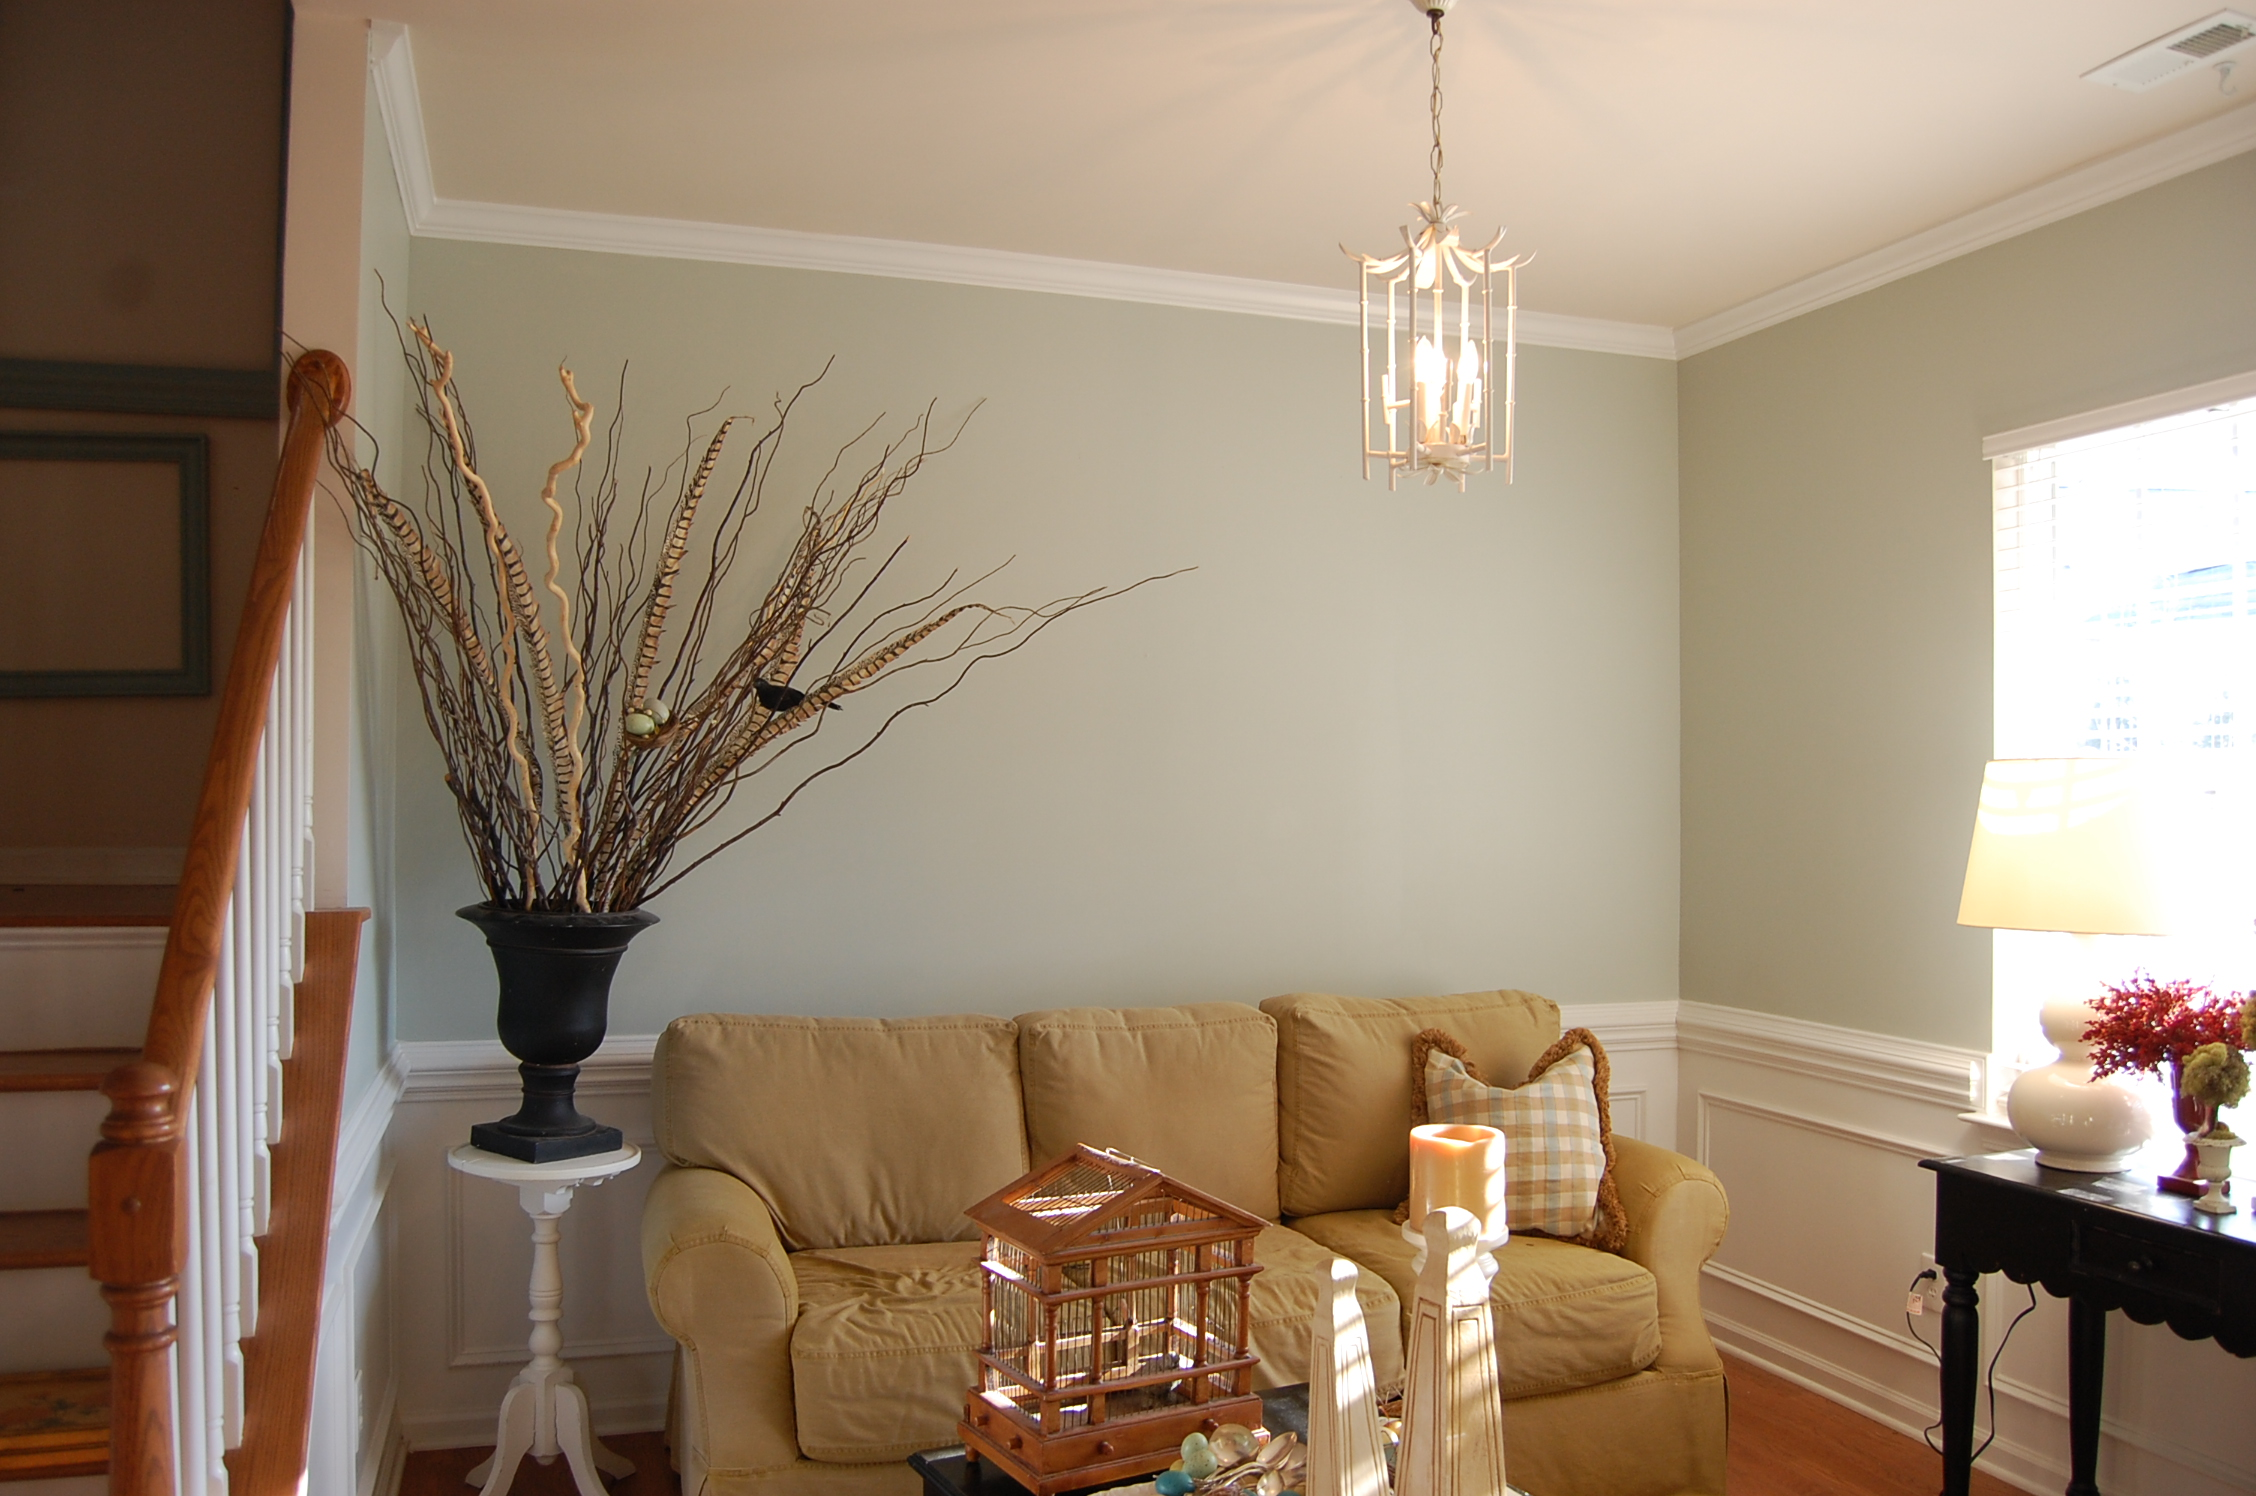 By the way the color i used in the front room is sherwin williams comfort gray 6205 its a beautiful warm blueish gray that looks nice paired with crisp